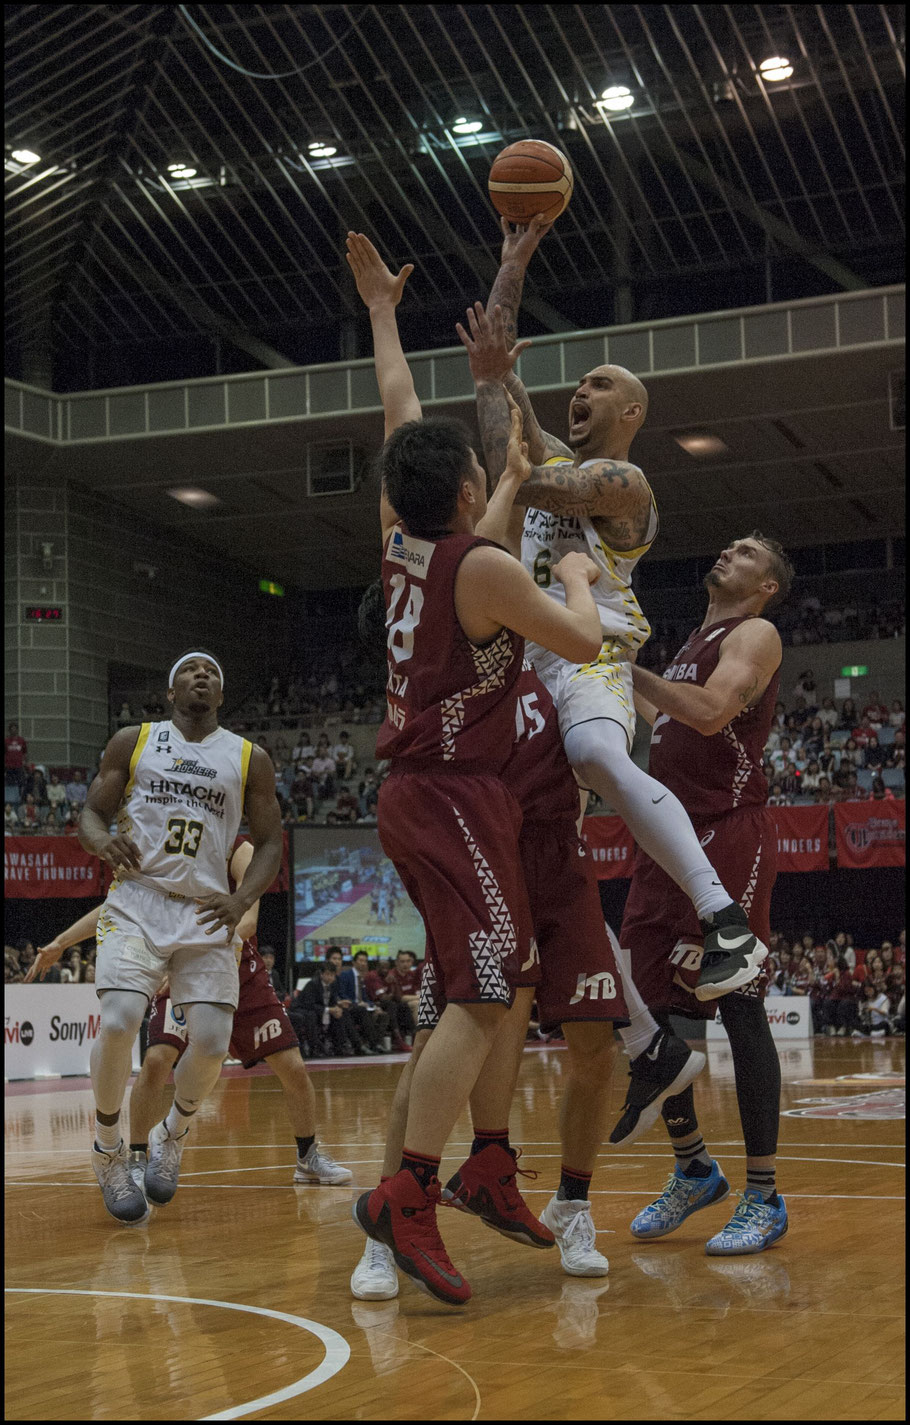 Robert Sacre was pleased with Shibuya's performance on the night - Chris Pfaff, Inside Sport: Japan, May 6, 2017